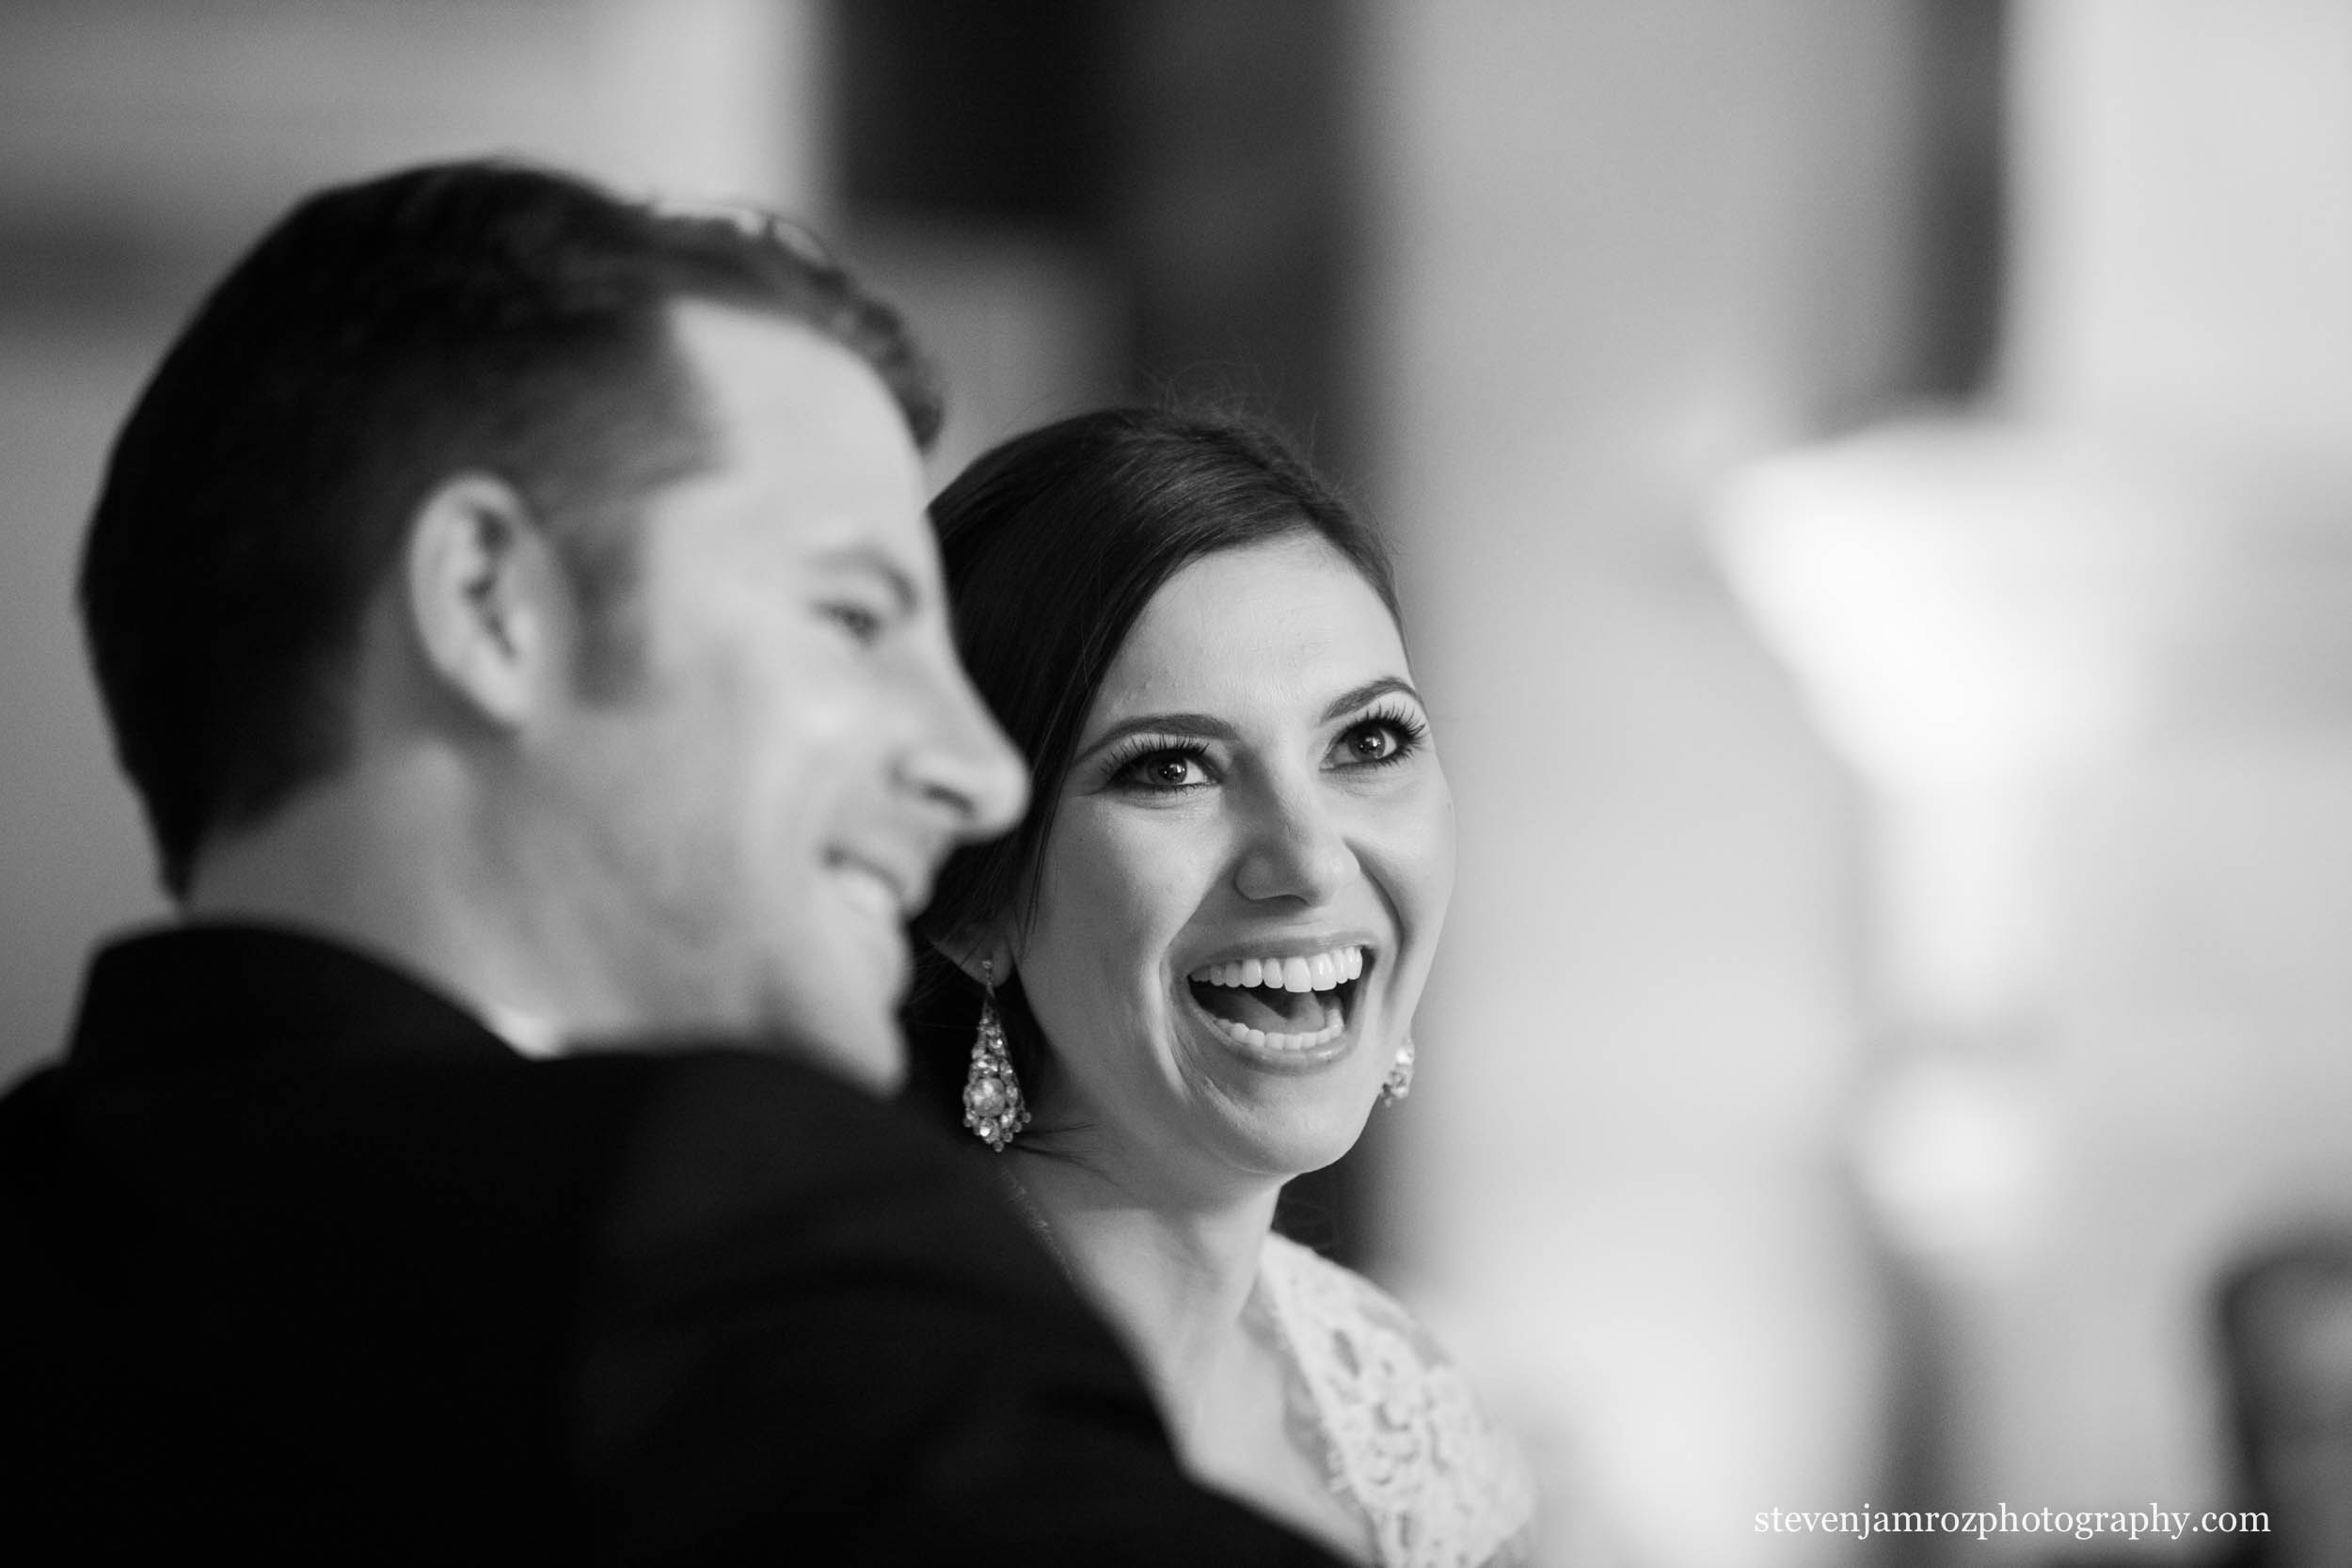 wedding-reception-bride-steven-jamroz-photography-0161.jpg